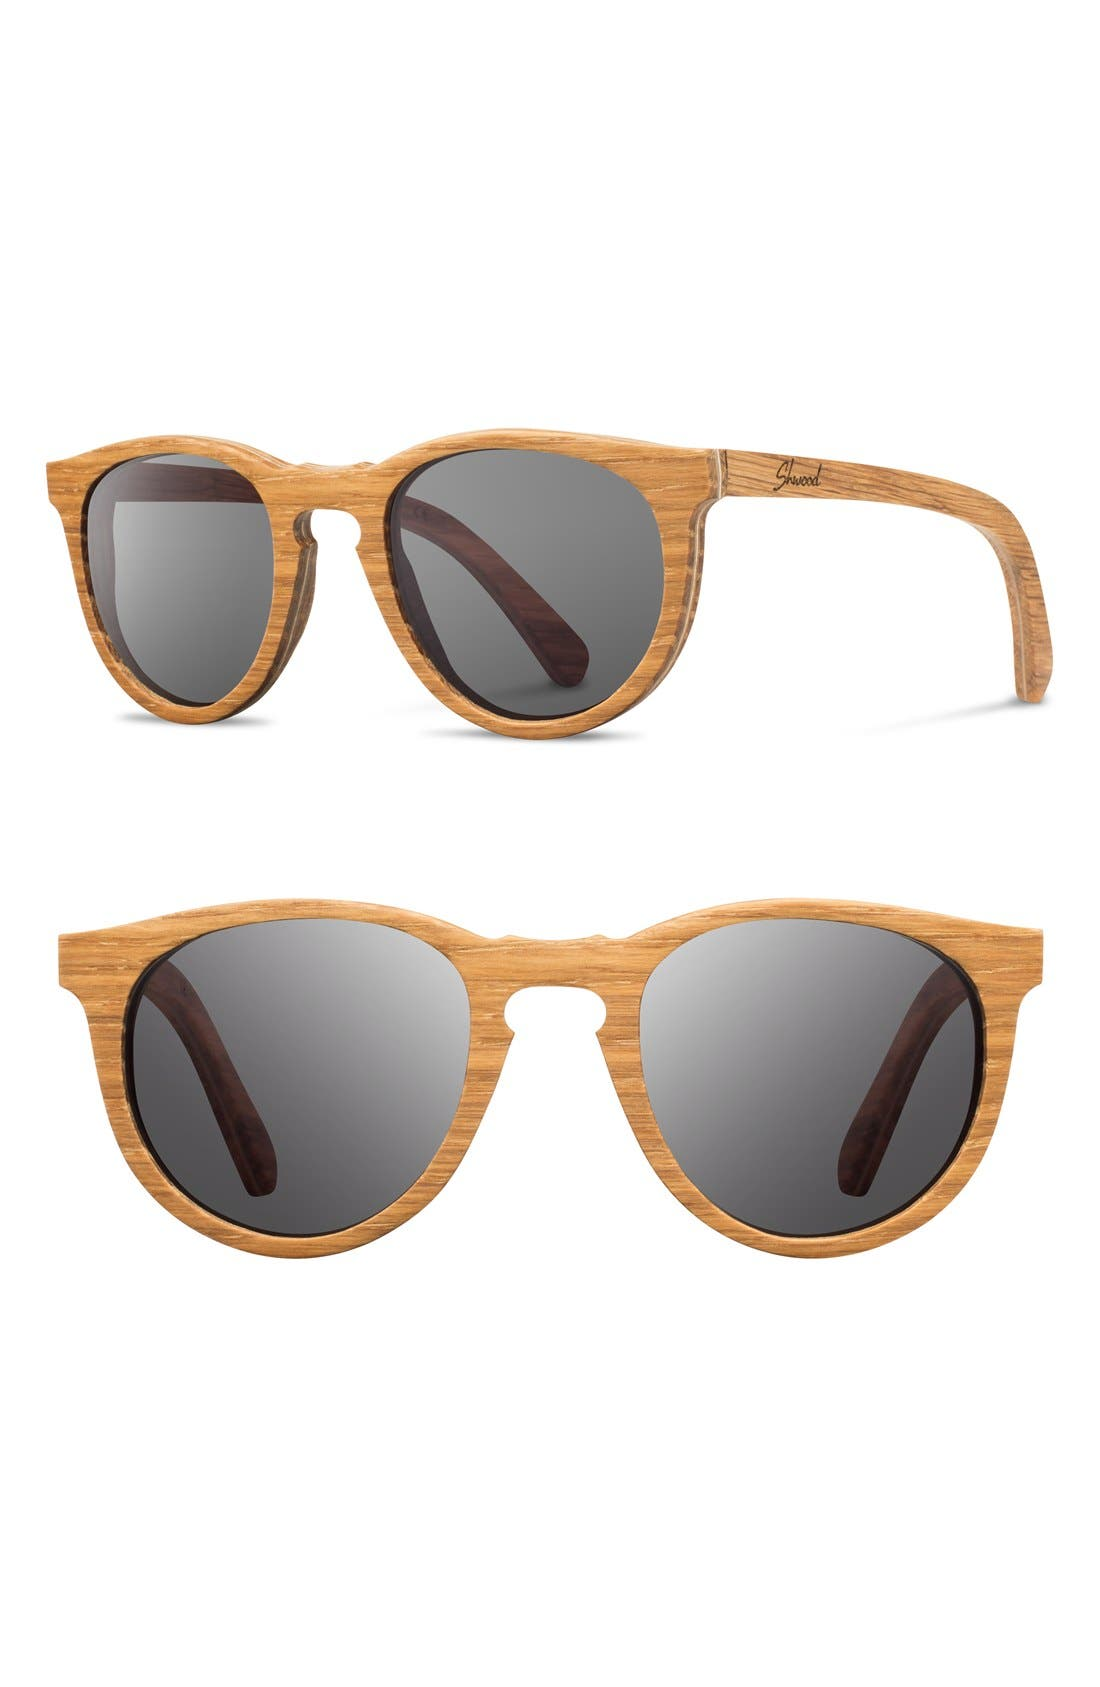 Alternate Image 1 Selected - Shwood 'Belmont' 48mm Wood Sunglasses